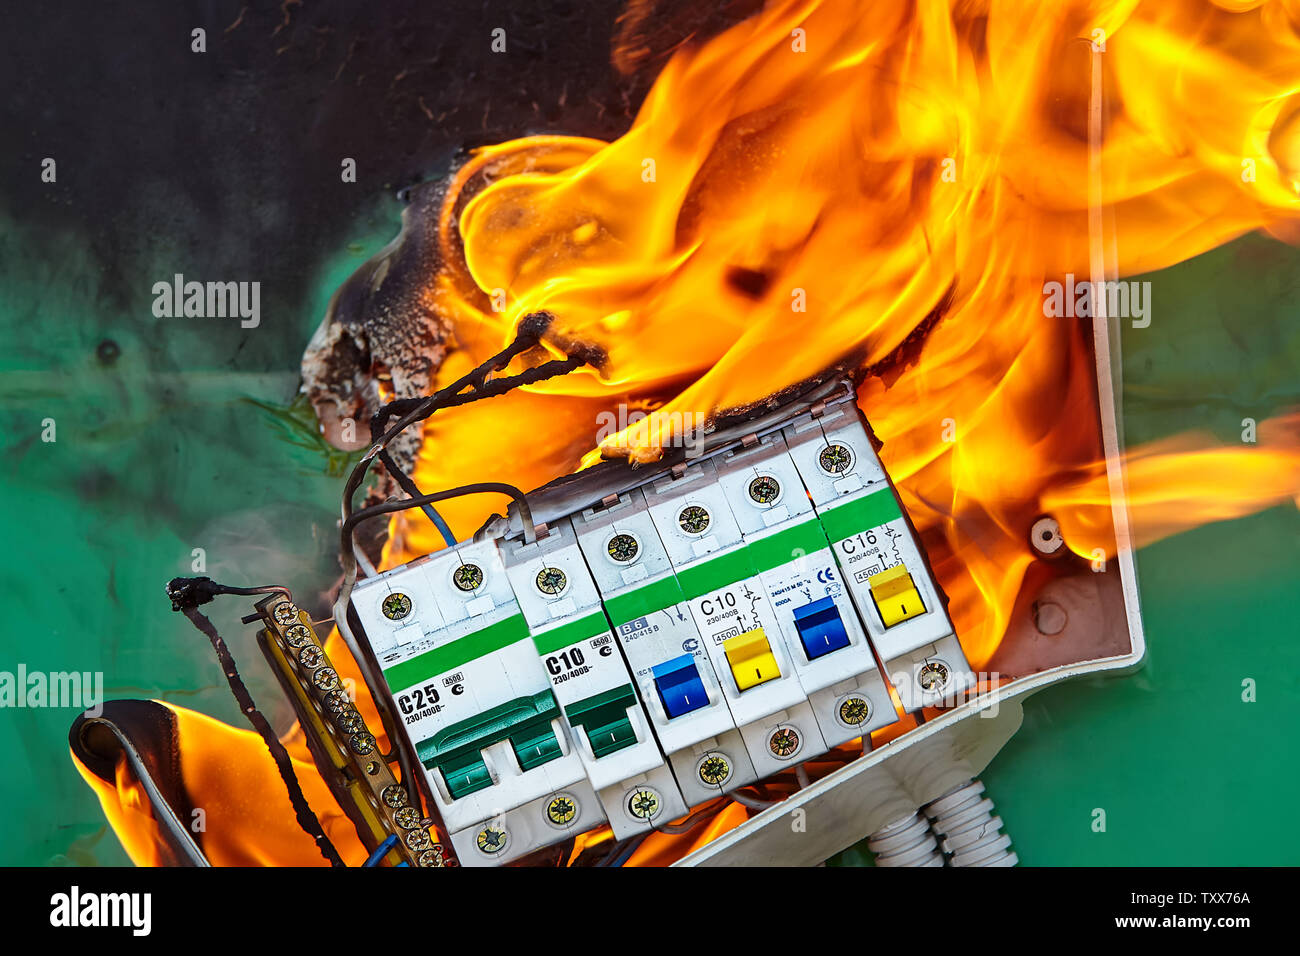 bad electrical wiring systems in electrical panel became the caused of  fire  - stock image